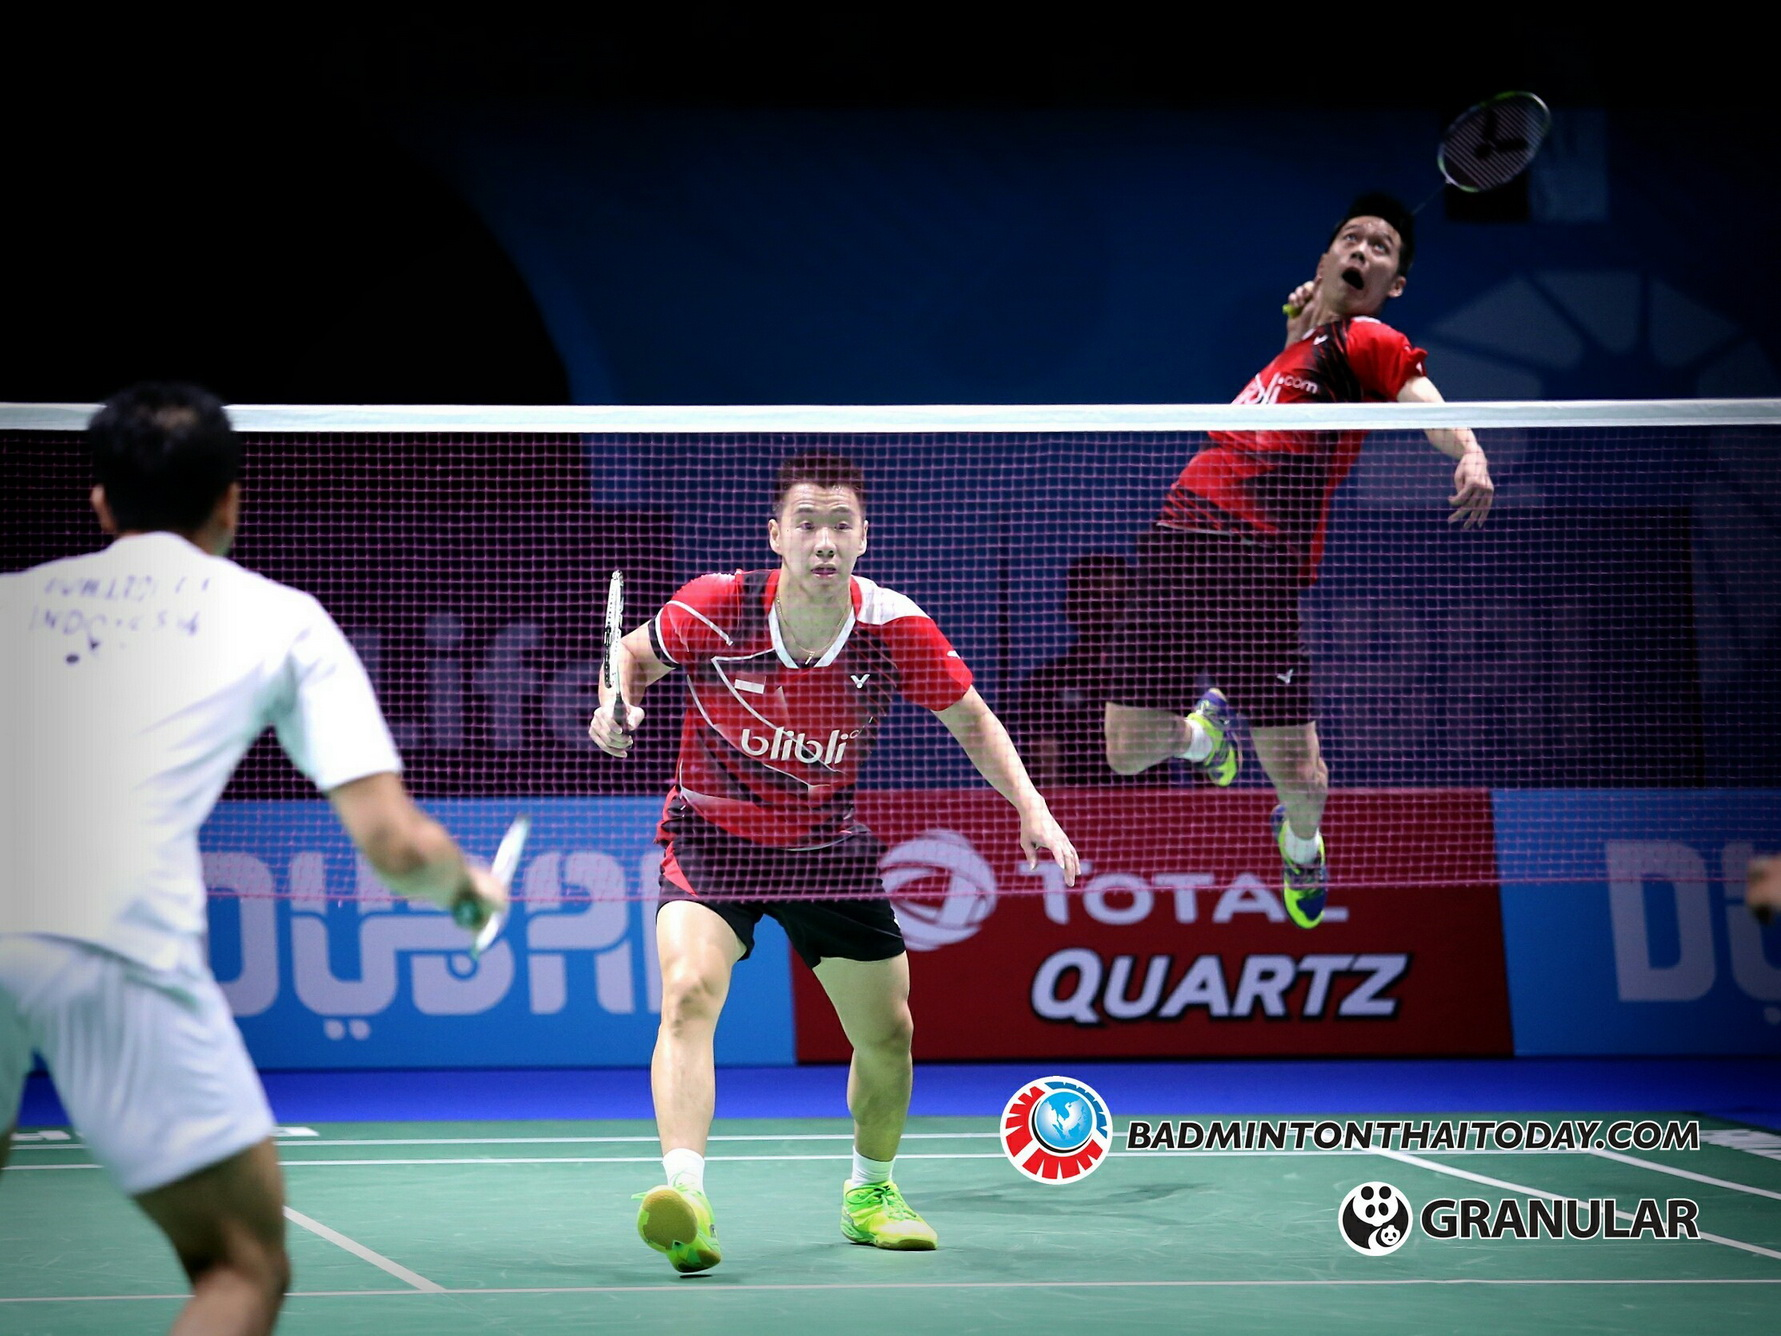 Marcus Fernaldi Gideon - Kevin Sanjaya Sukamuljo @ Dubai World Superseries Final 2016 รูปภาพกีฬาแบดมินตัน